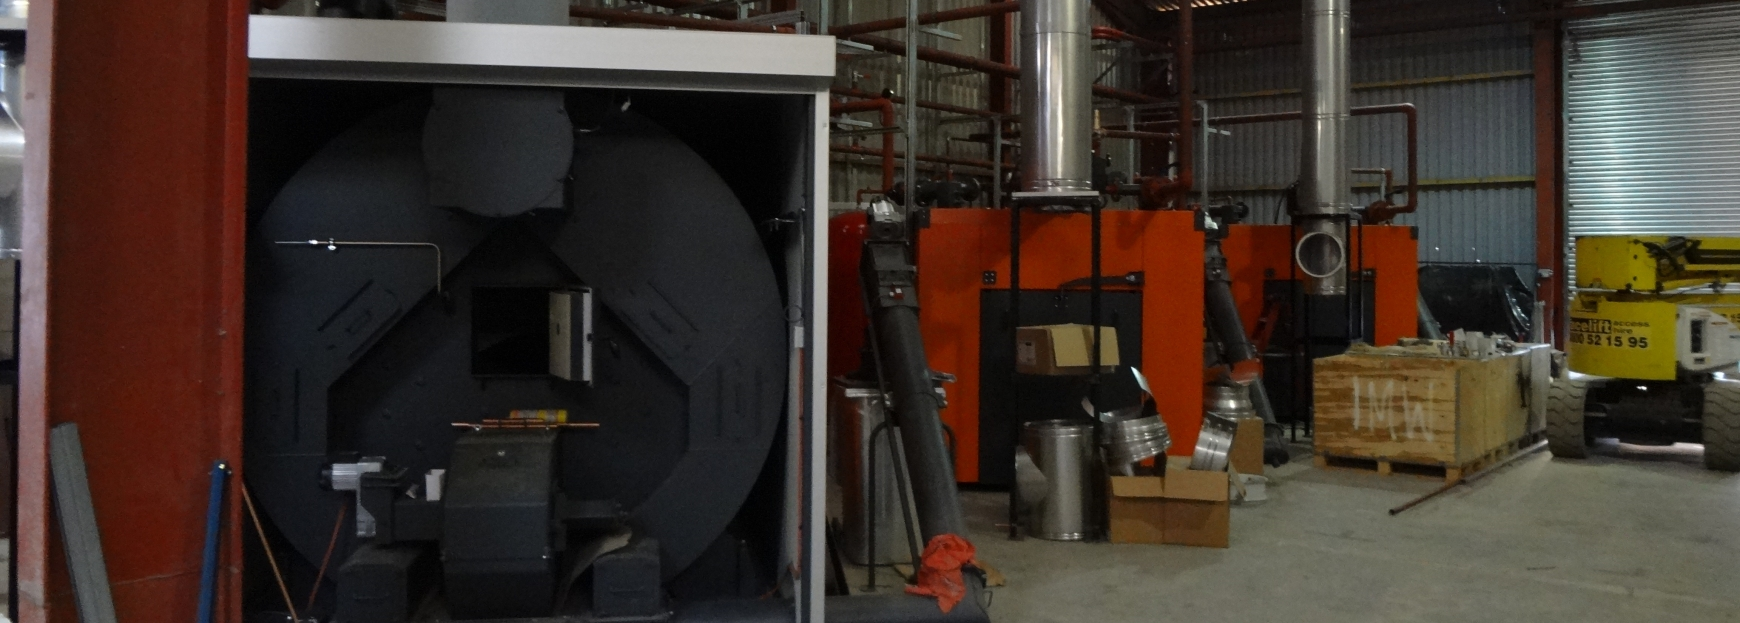 Three biomass boilers being installed in a shed